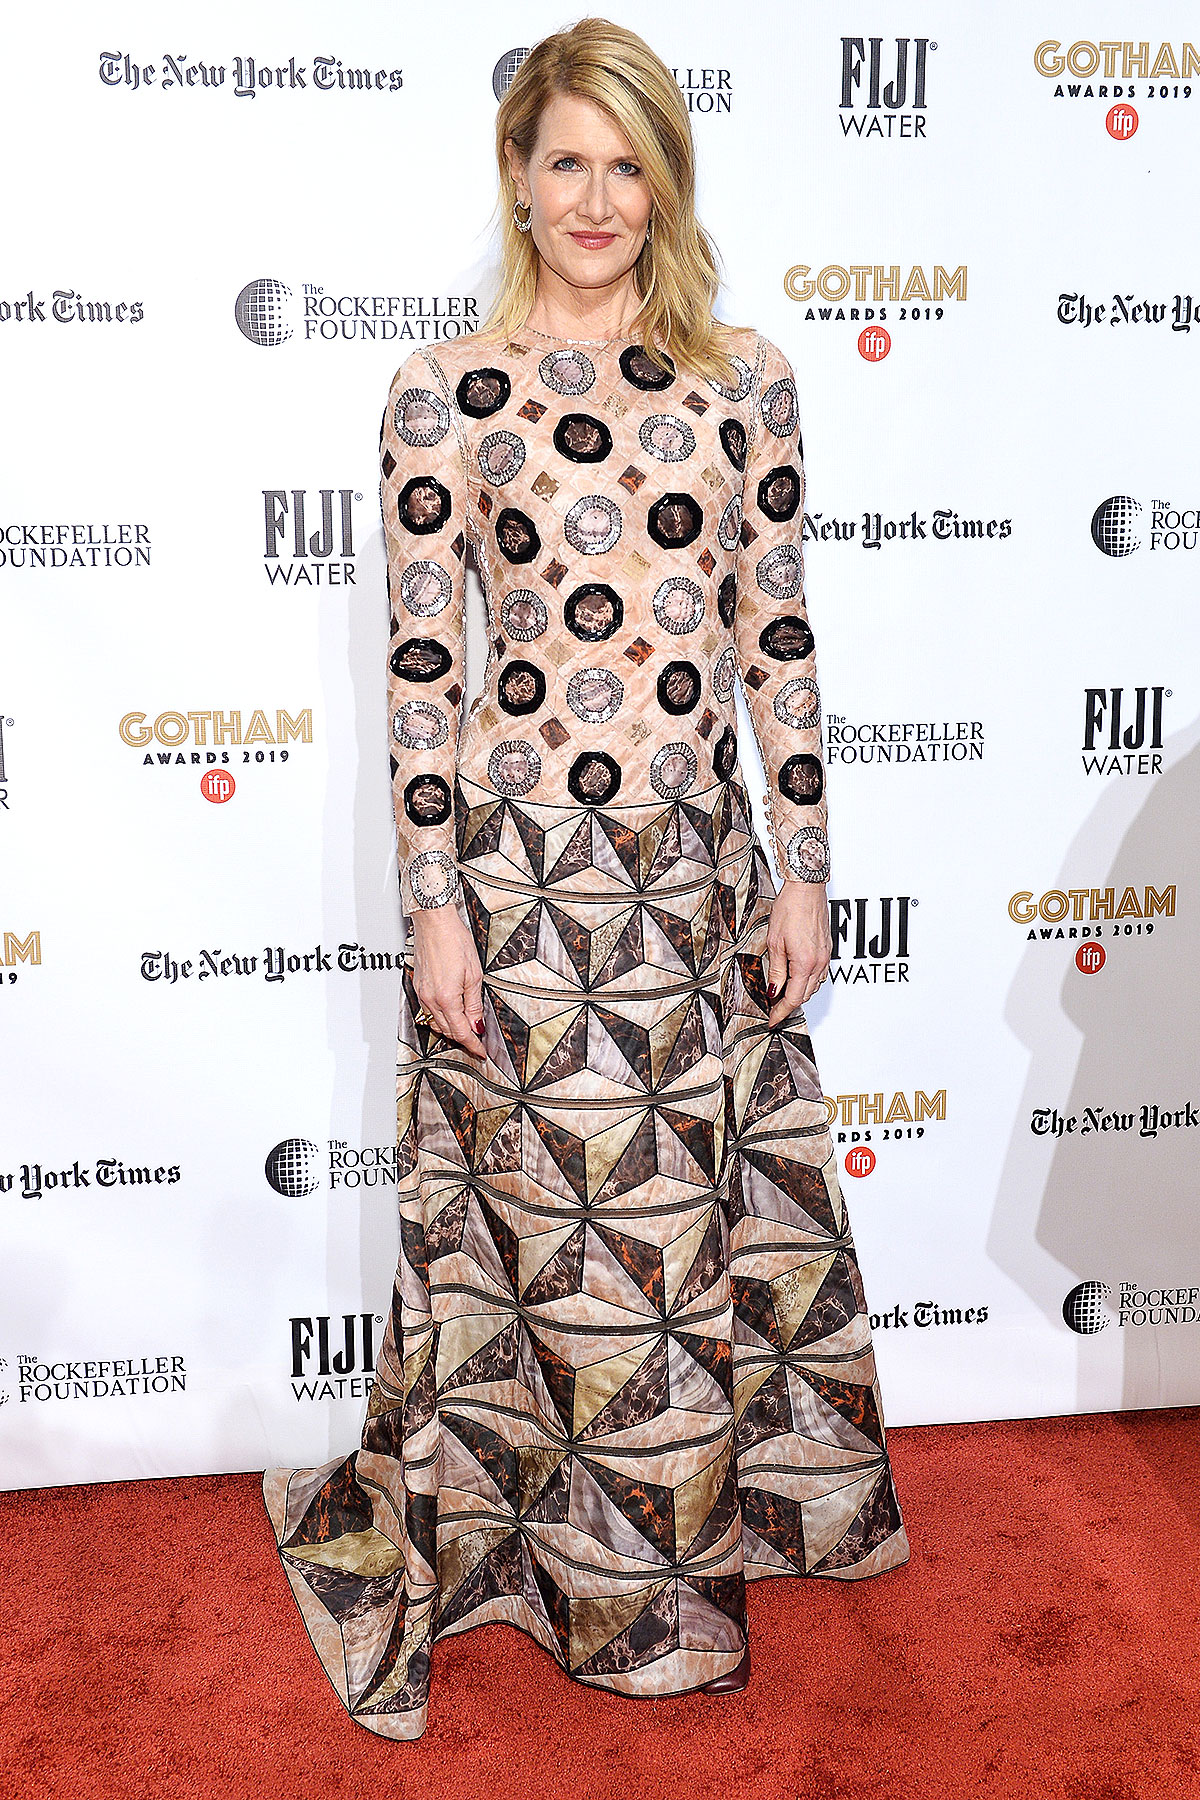 NEW YORK, NEW YORK - DECEMBER 02: Laura Dern attends the 2019 IFP Gotham Awards with FIJI Water at Cipriani Wall Street on December 02, 2019 in New York City.